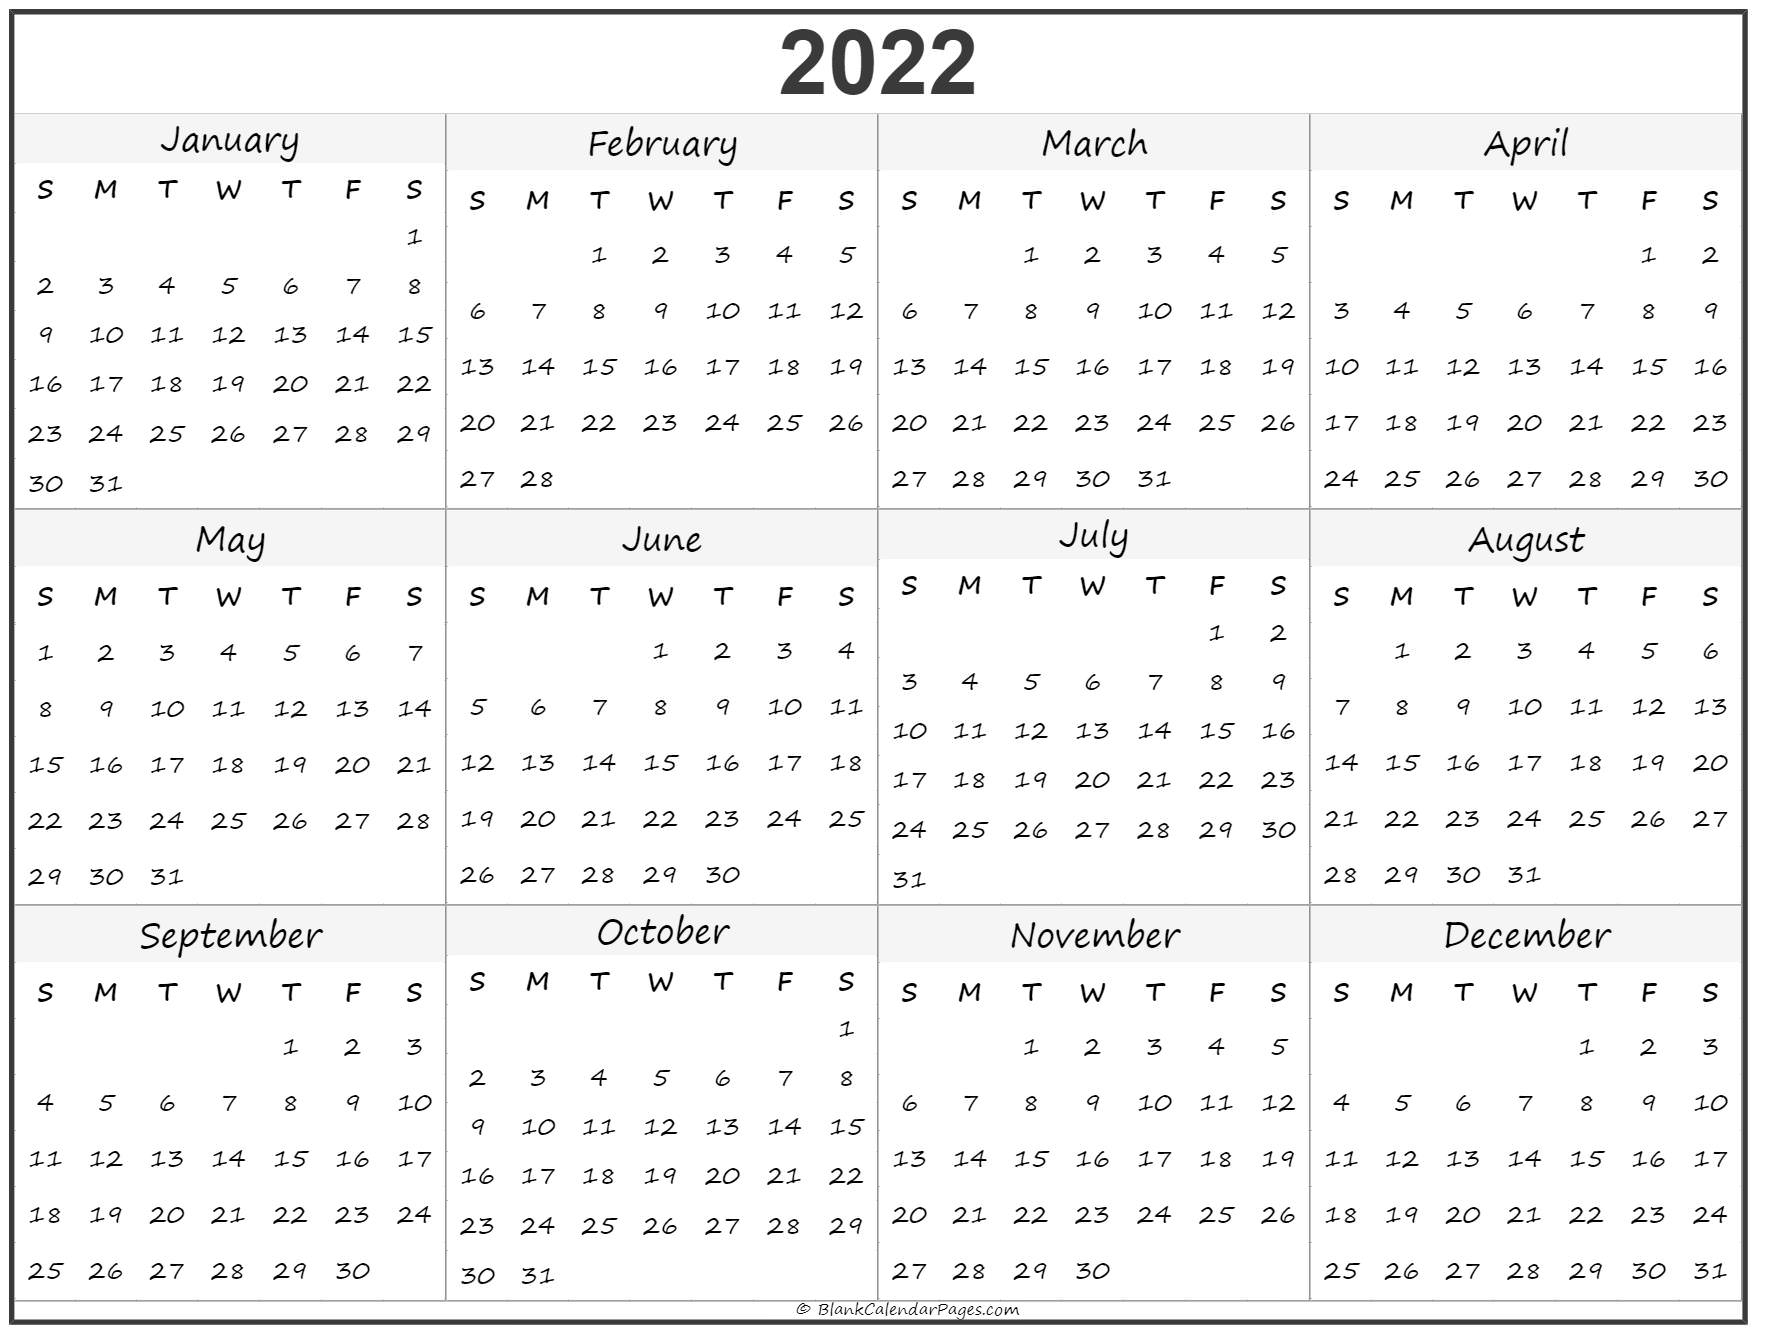 2022 Year Calendar | Yearly Printable in Walmart Fiscal Calendar For 2022